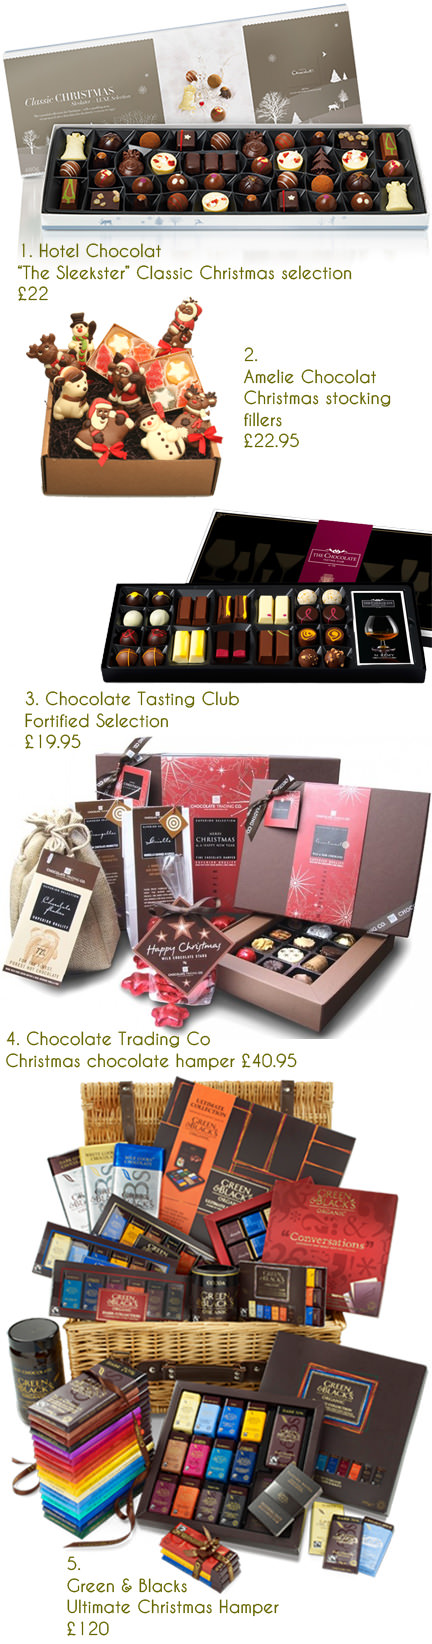 selection of festive Christmas chocolate boxes & gifts   H is for Home